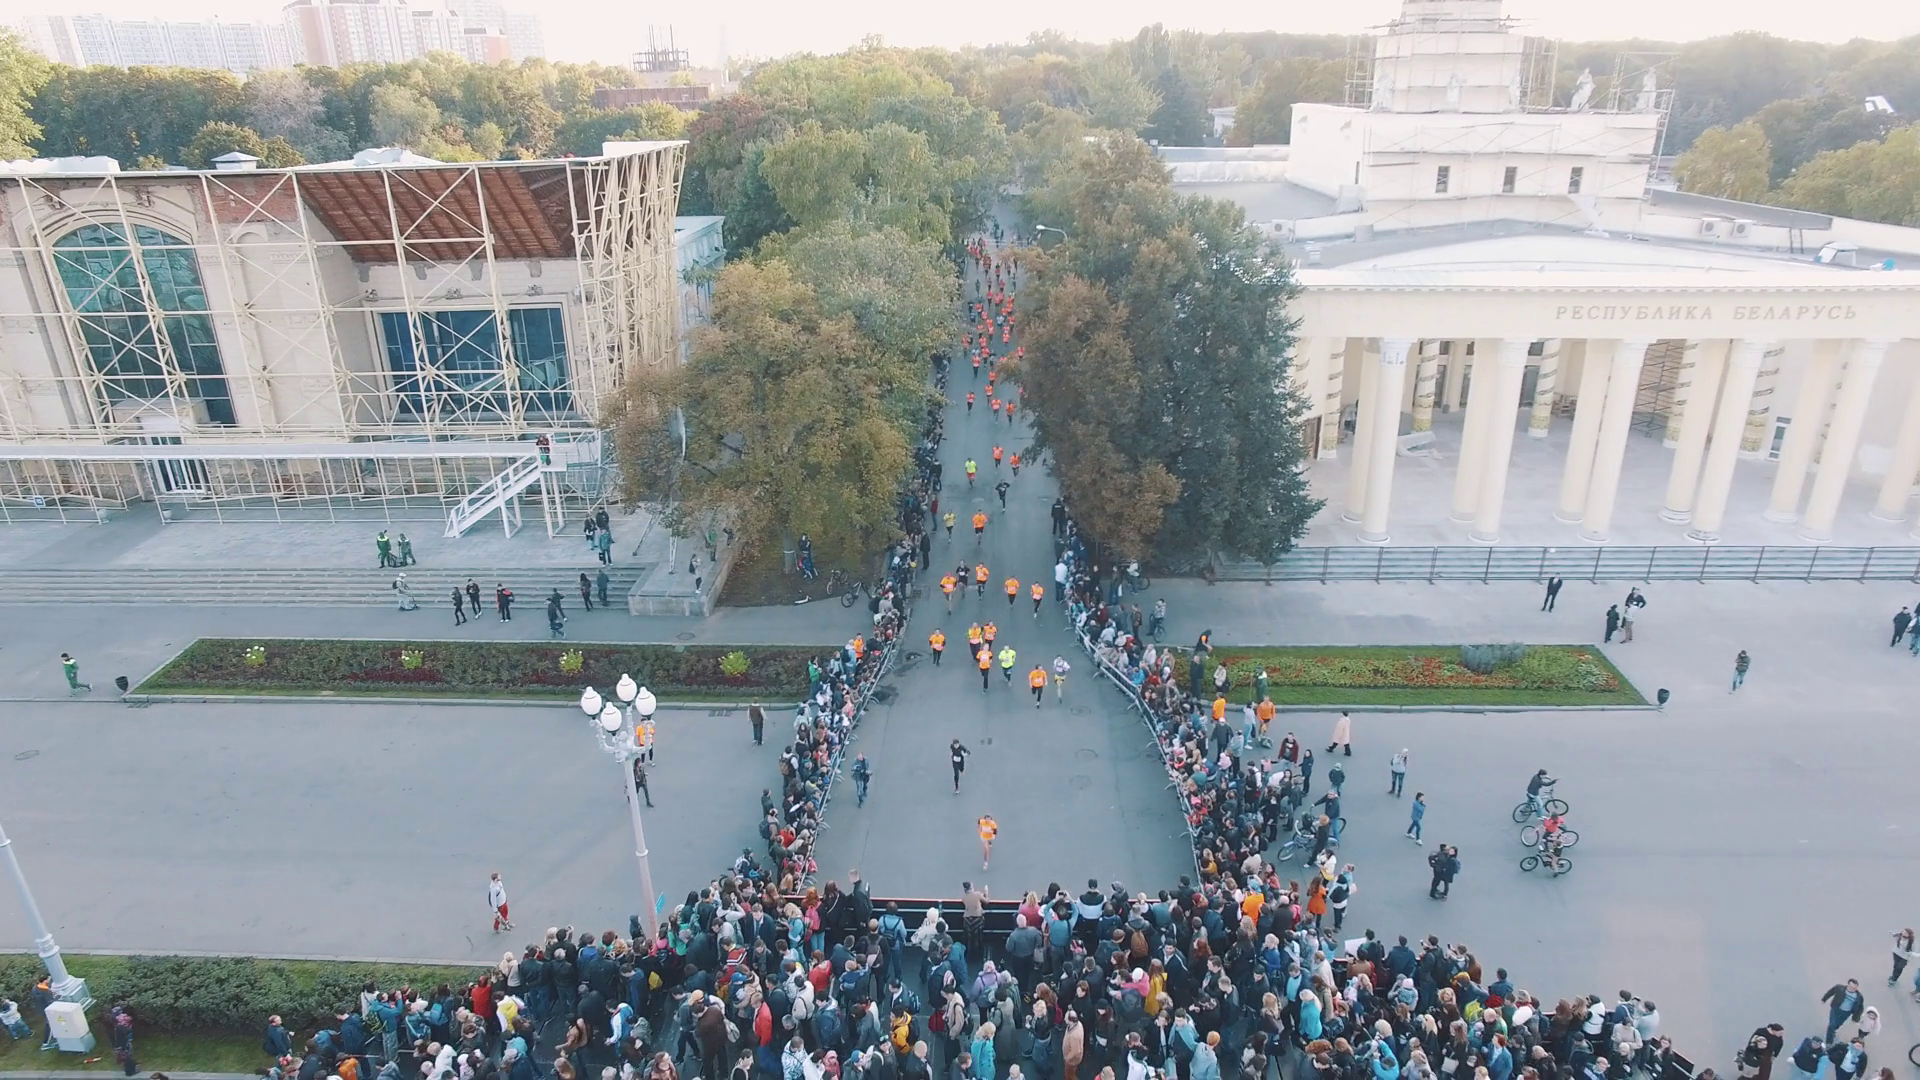 Orange Png Of People At A Park - Aerial view of people in orange shirts running marathon in city ...